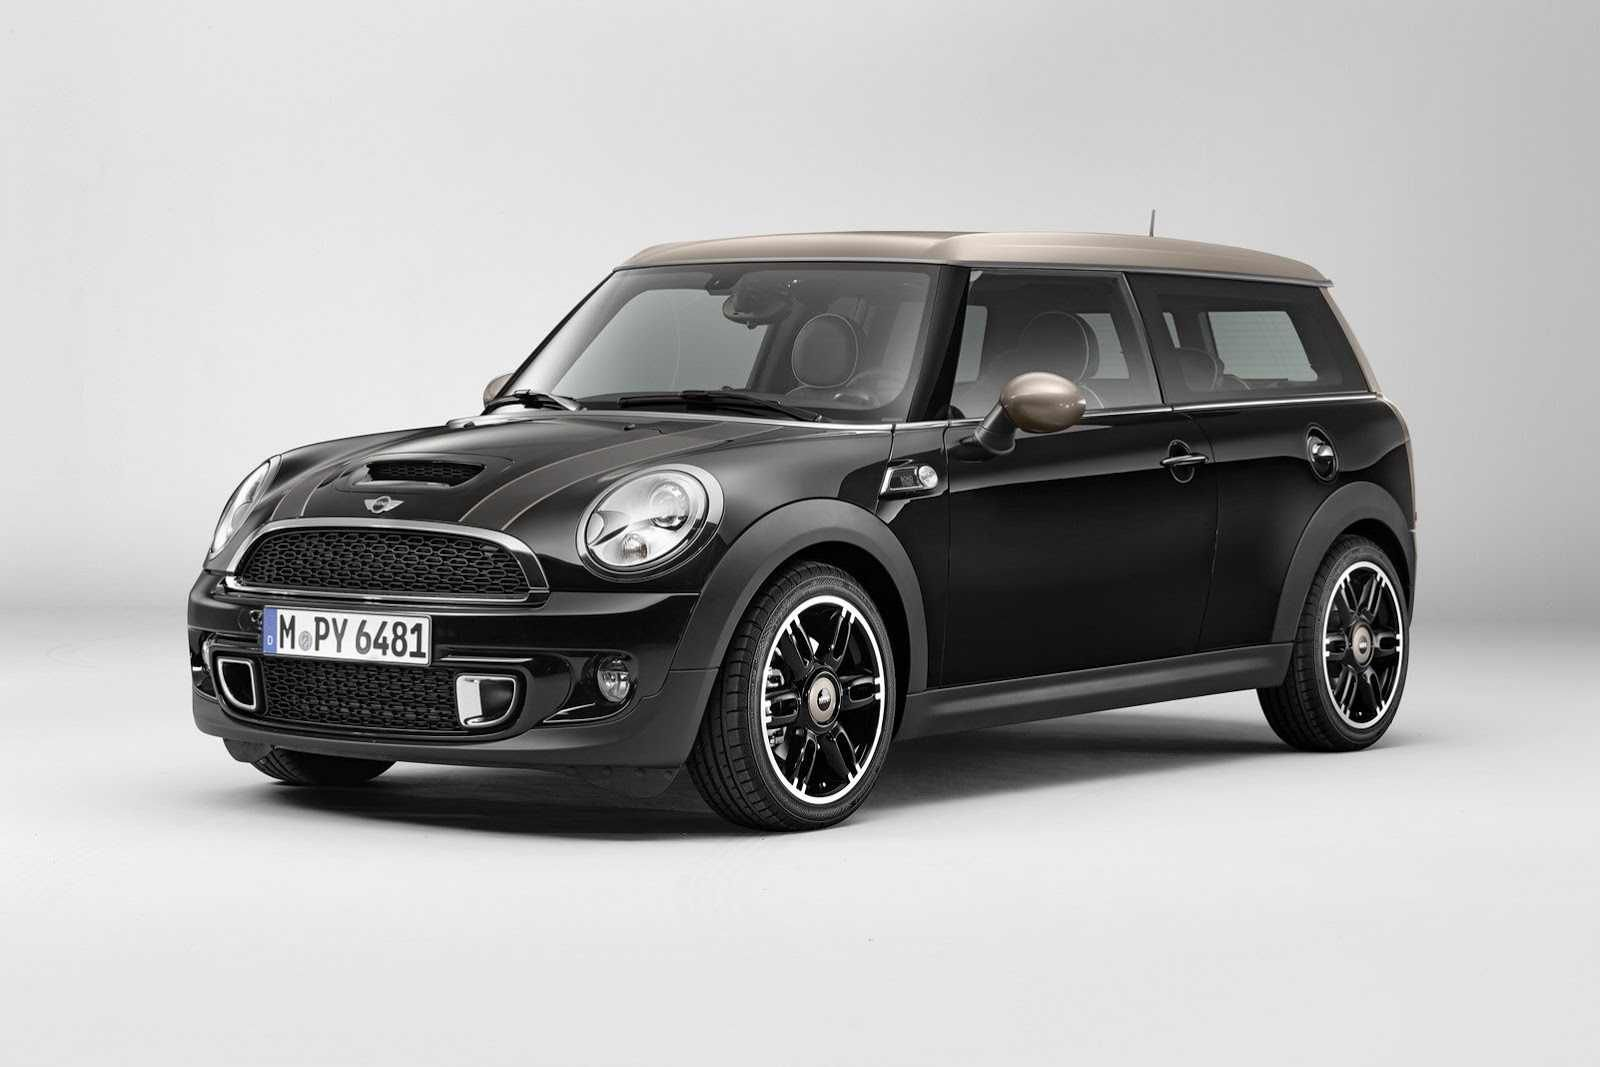 Mini Clubman Price 15910 To 26260 Target Price 15194 25071